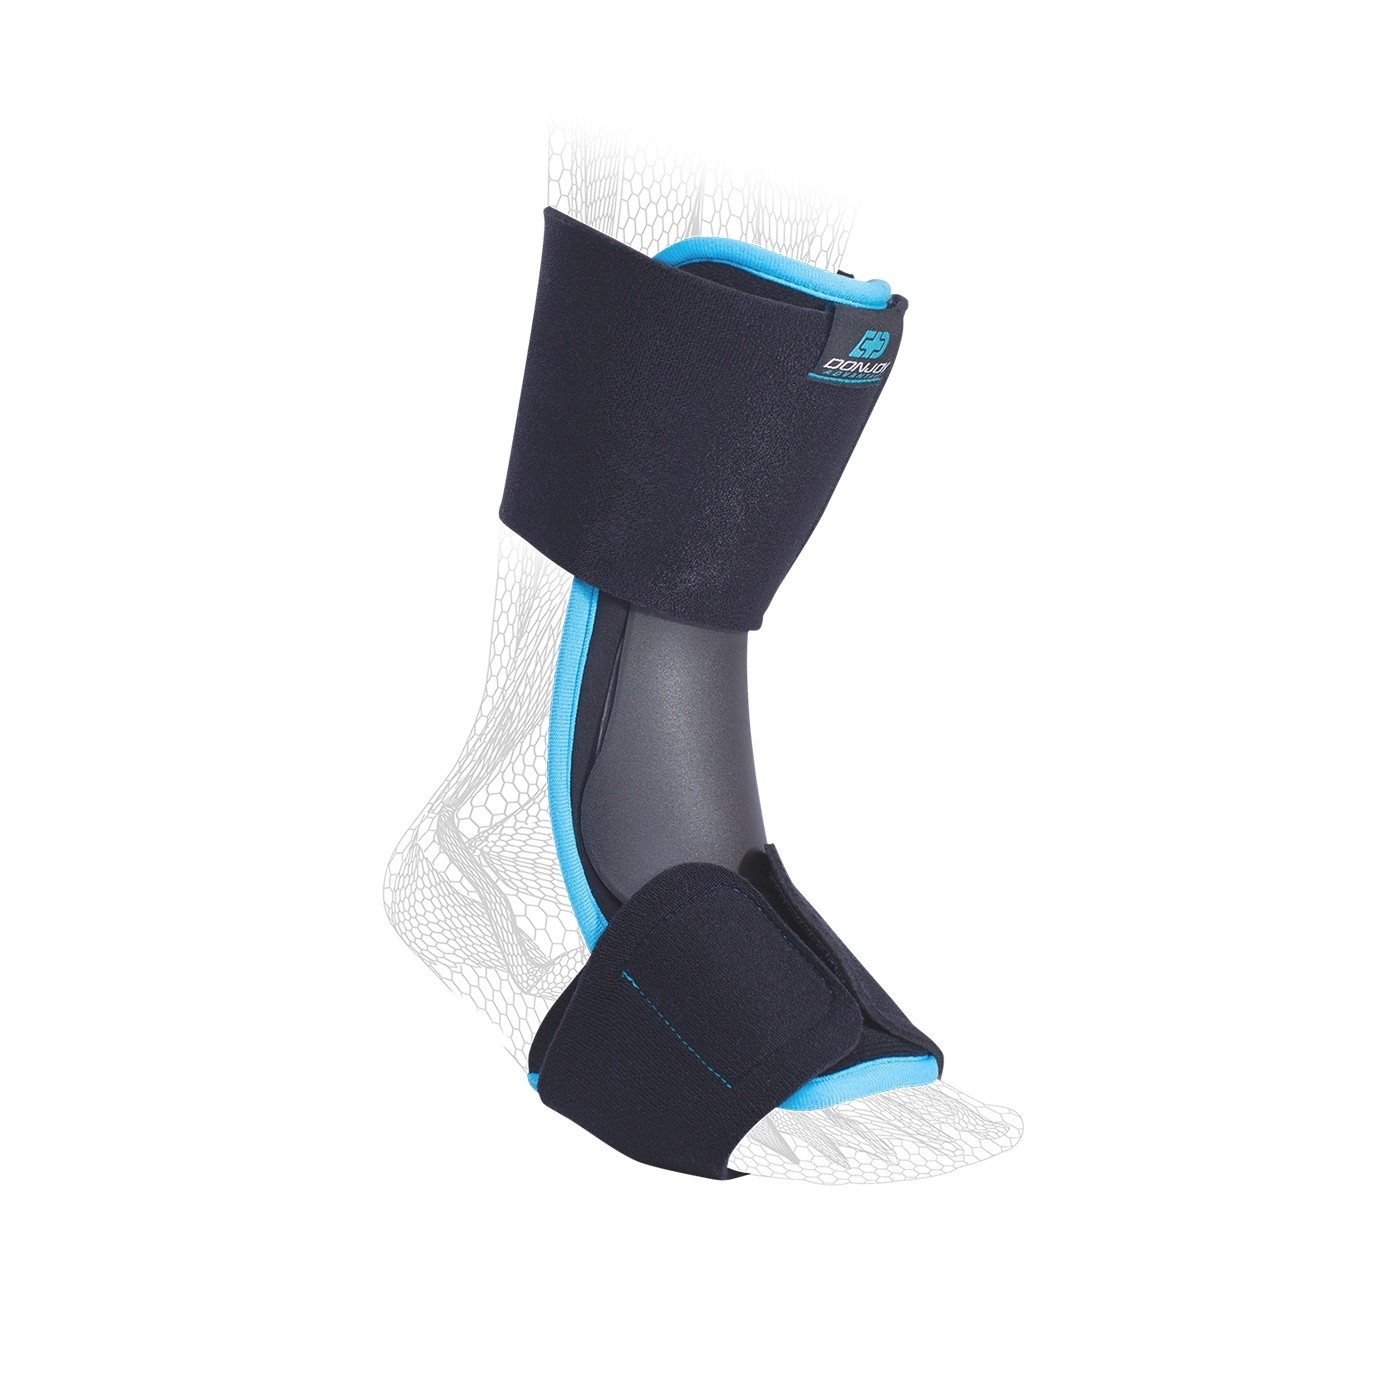 DonJoy Advantage Plantar Fasciitis Night Splint